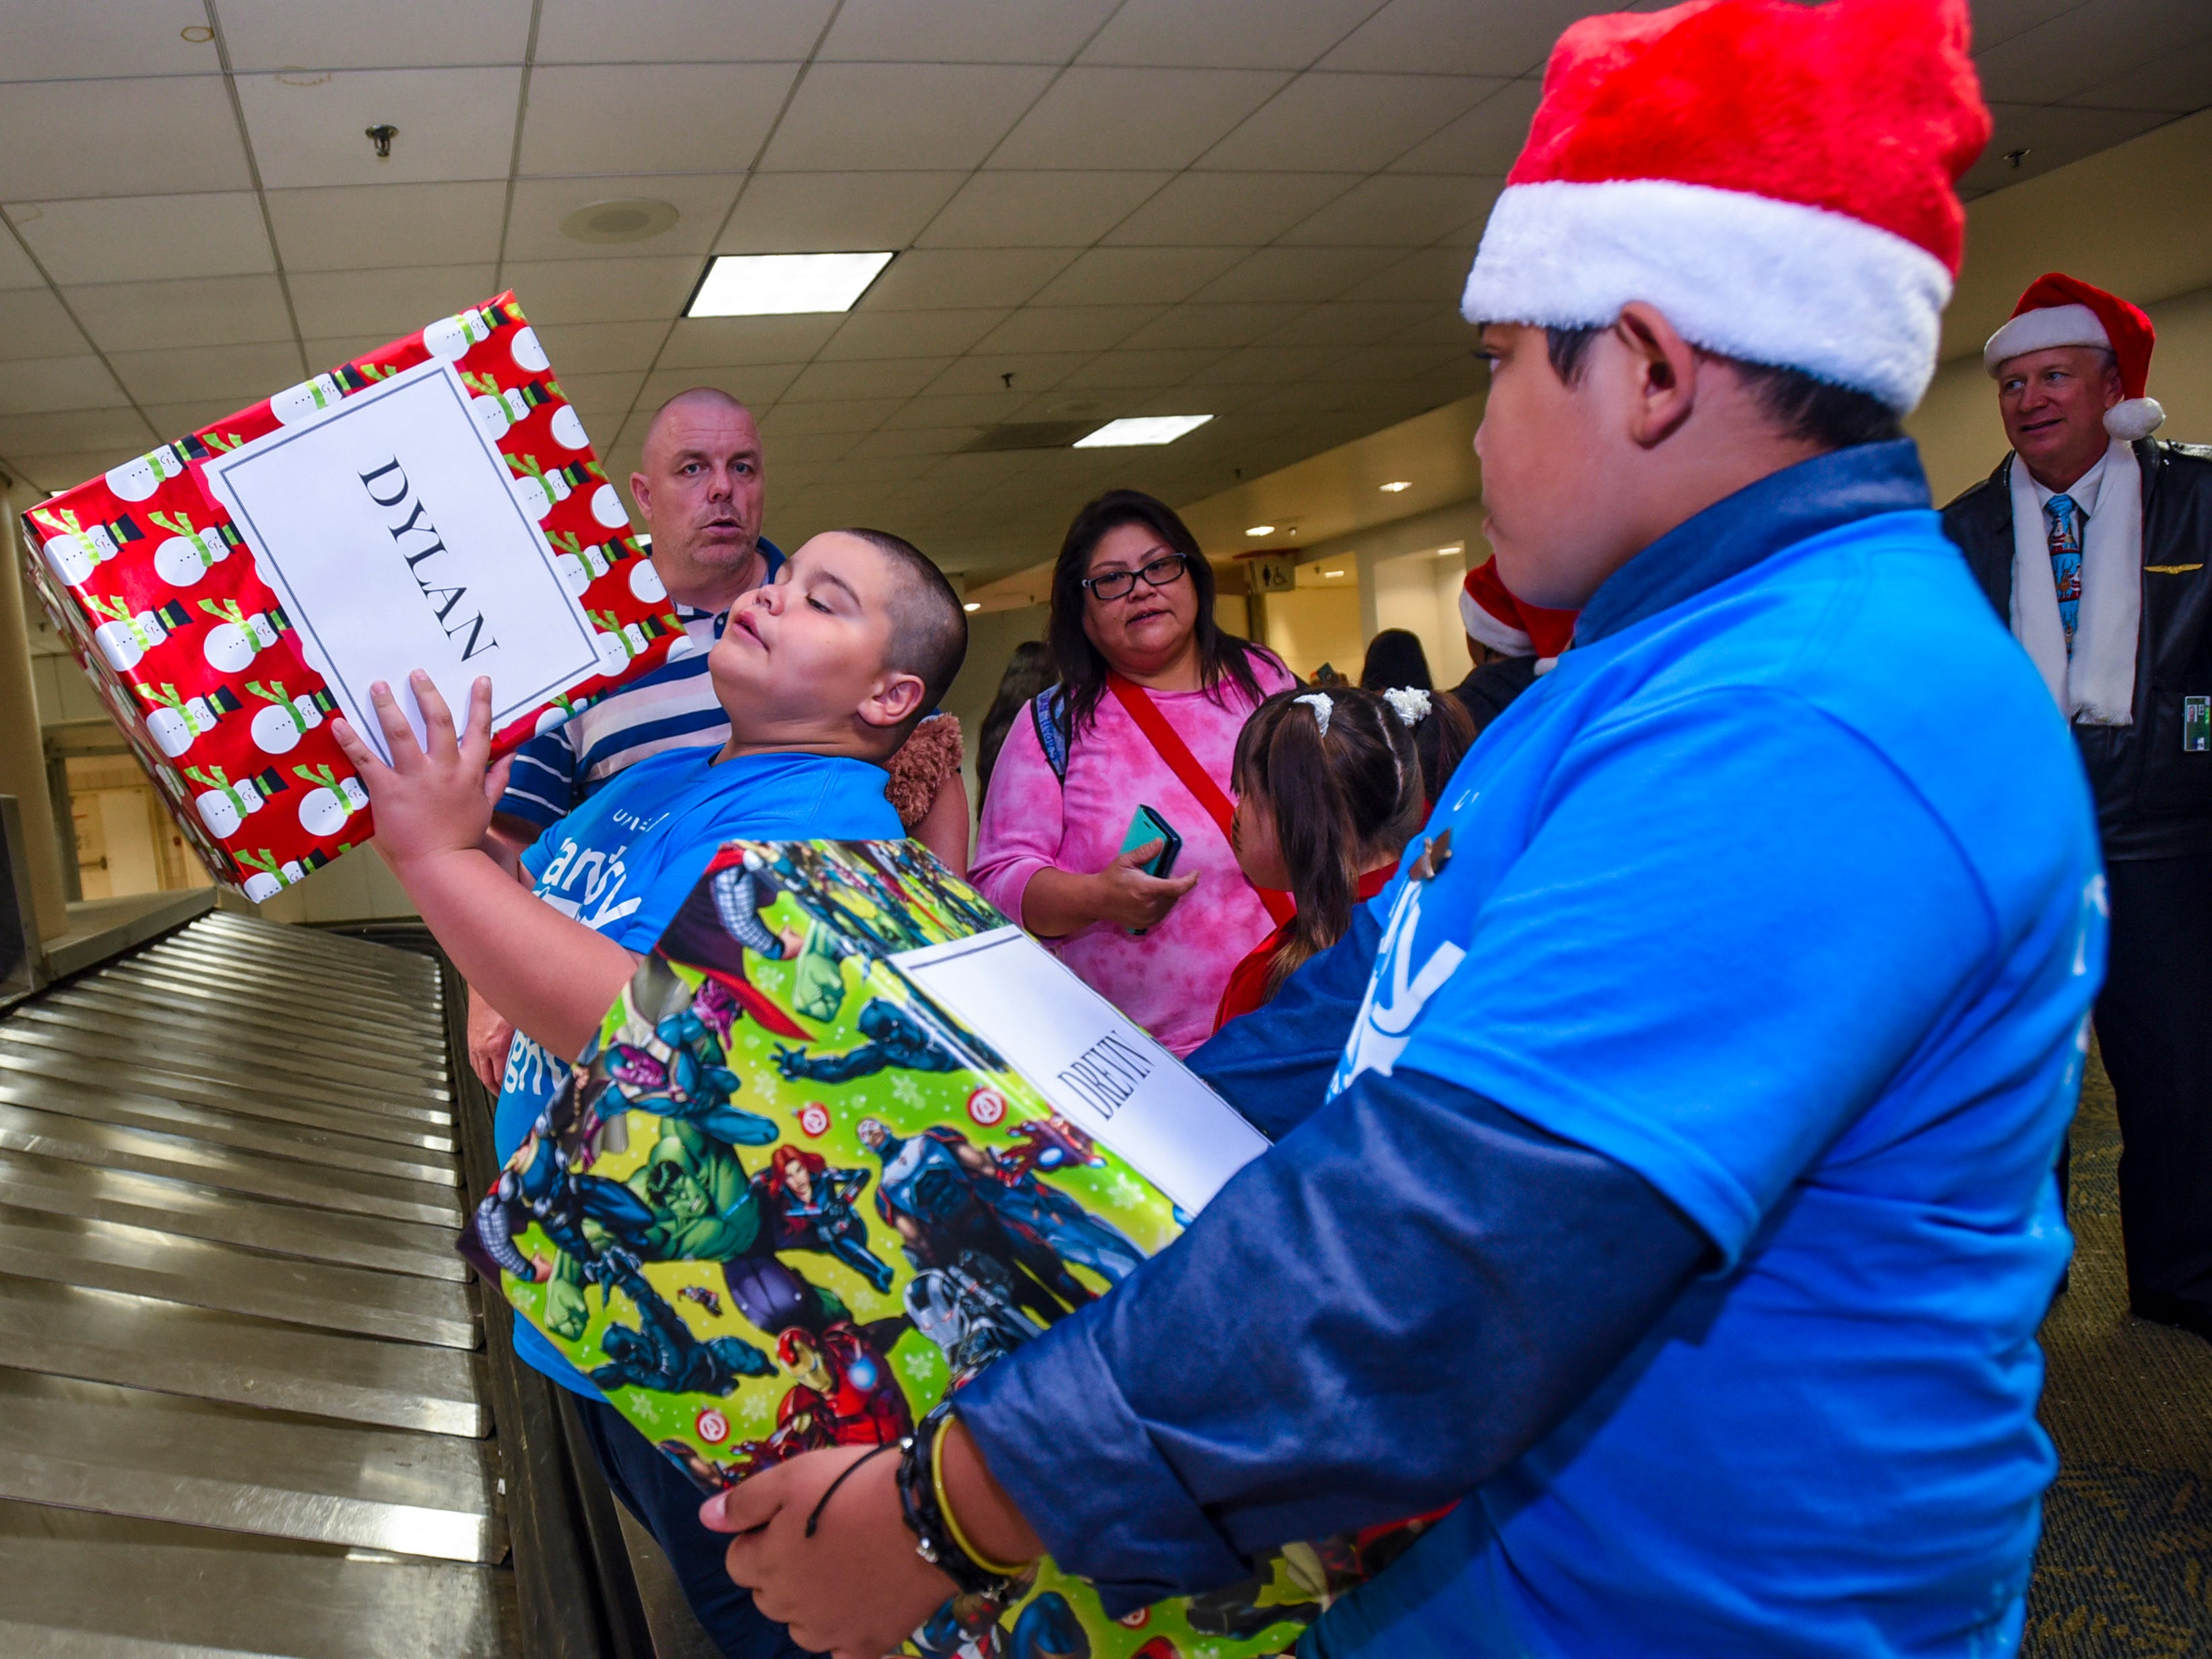 Dylan Paul Stremmelaar, 9, finds his gift on the luggage carousel after participating in United Airlines' Fantasy Flight to the North Pole at the A.B. Won Pat International Airport on Friday, Dec. 7, 2018. Thirty-three Guam Special Olympians, and their guests, were presented with an experience to enjoy live entertainment, food, games, holiday cookie decorating and face paintings after a make-believe flight to visit Santa Claus and his helpers. The event was the air carrier's fifth consecutive year of sharing holiday cheer with a group of the island's deserving children. This year, the airline's Guam hub was joined by 15 other United destinations around the globe in celebrating the holiday event.